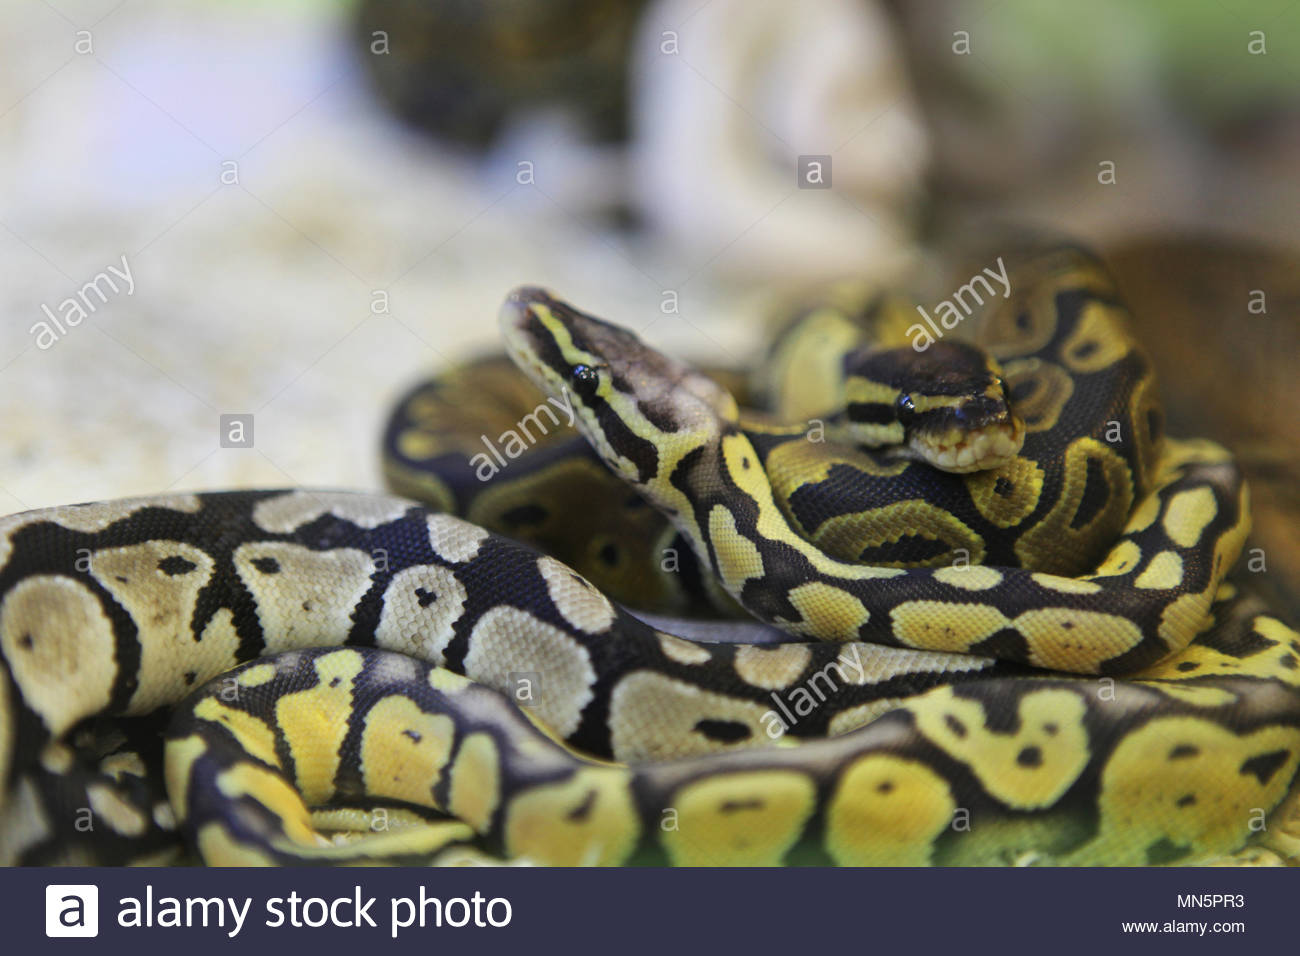 Super Pastel Orange Ghost Ball Pythons (males) at an exotic reptile